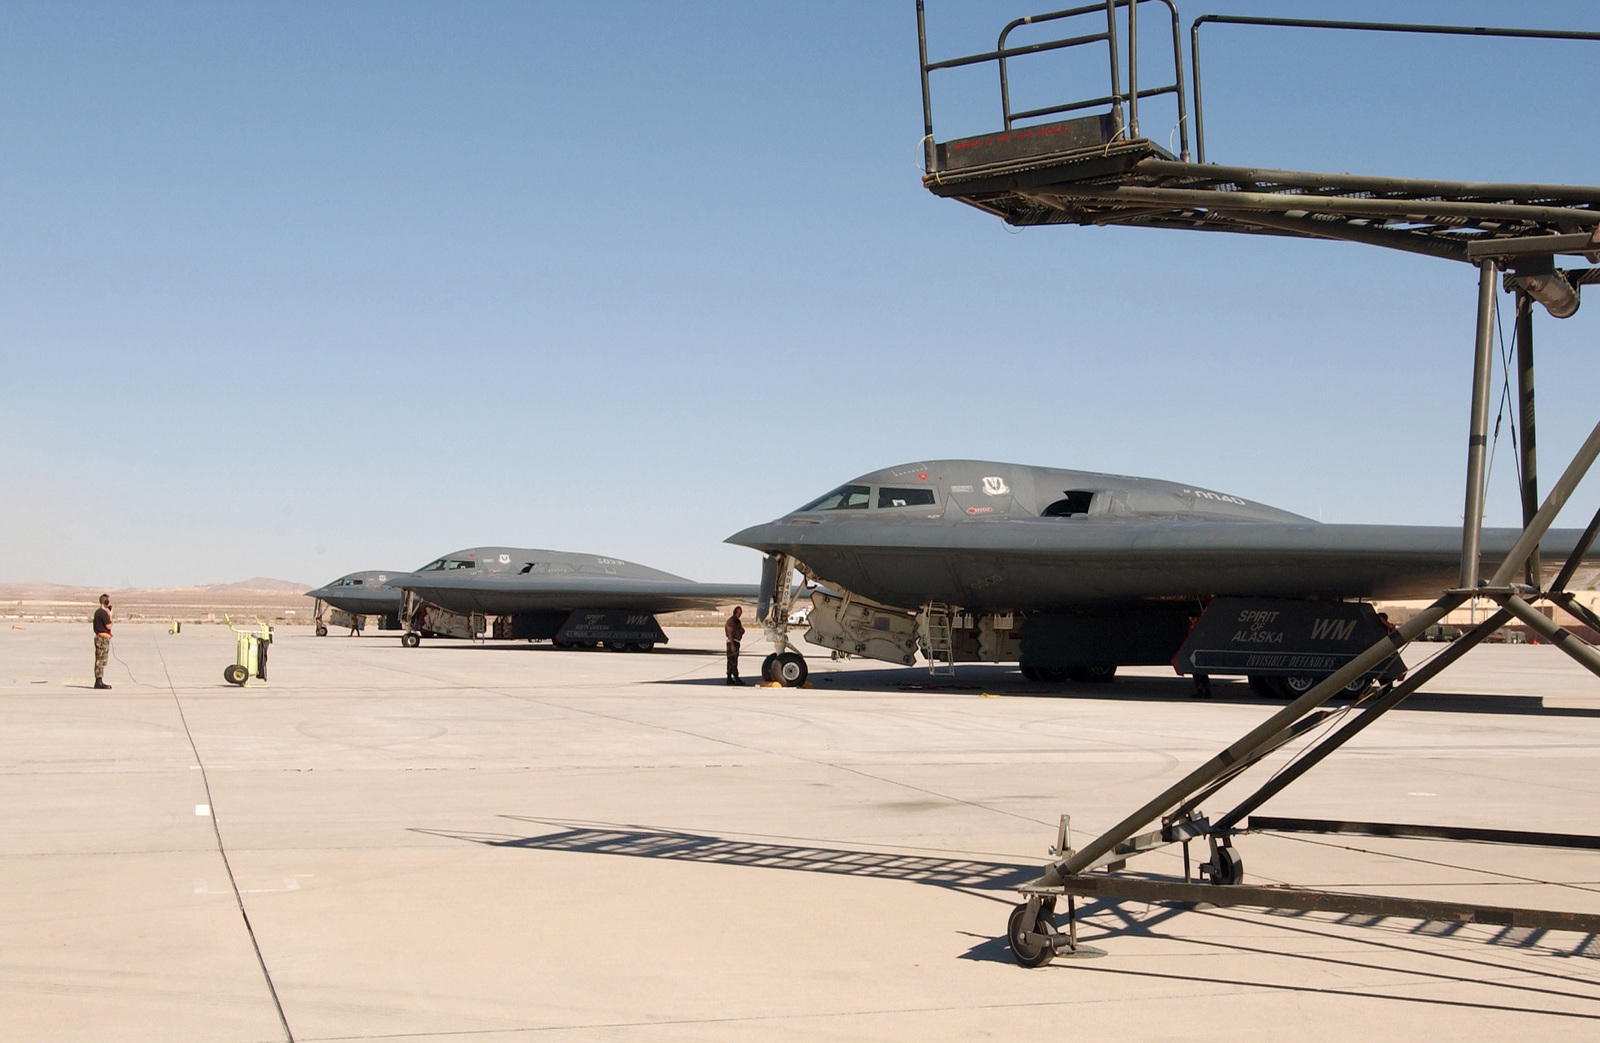 A US Air Force (USAF) B-2 Spirit bomber aircraft on the ramp at Nellis Air Force Base (AFB), Nevada (NV). The Bombers are from the 509th Bomb Wing (BW) at Whiteman Air Force Base (AFB), Missouri (MO) and participate in regular Red Flag exercises